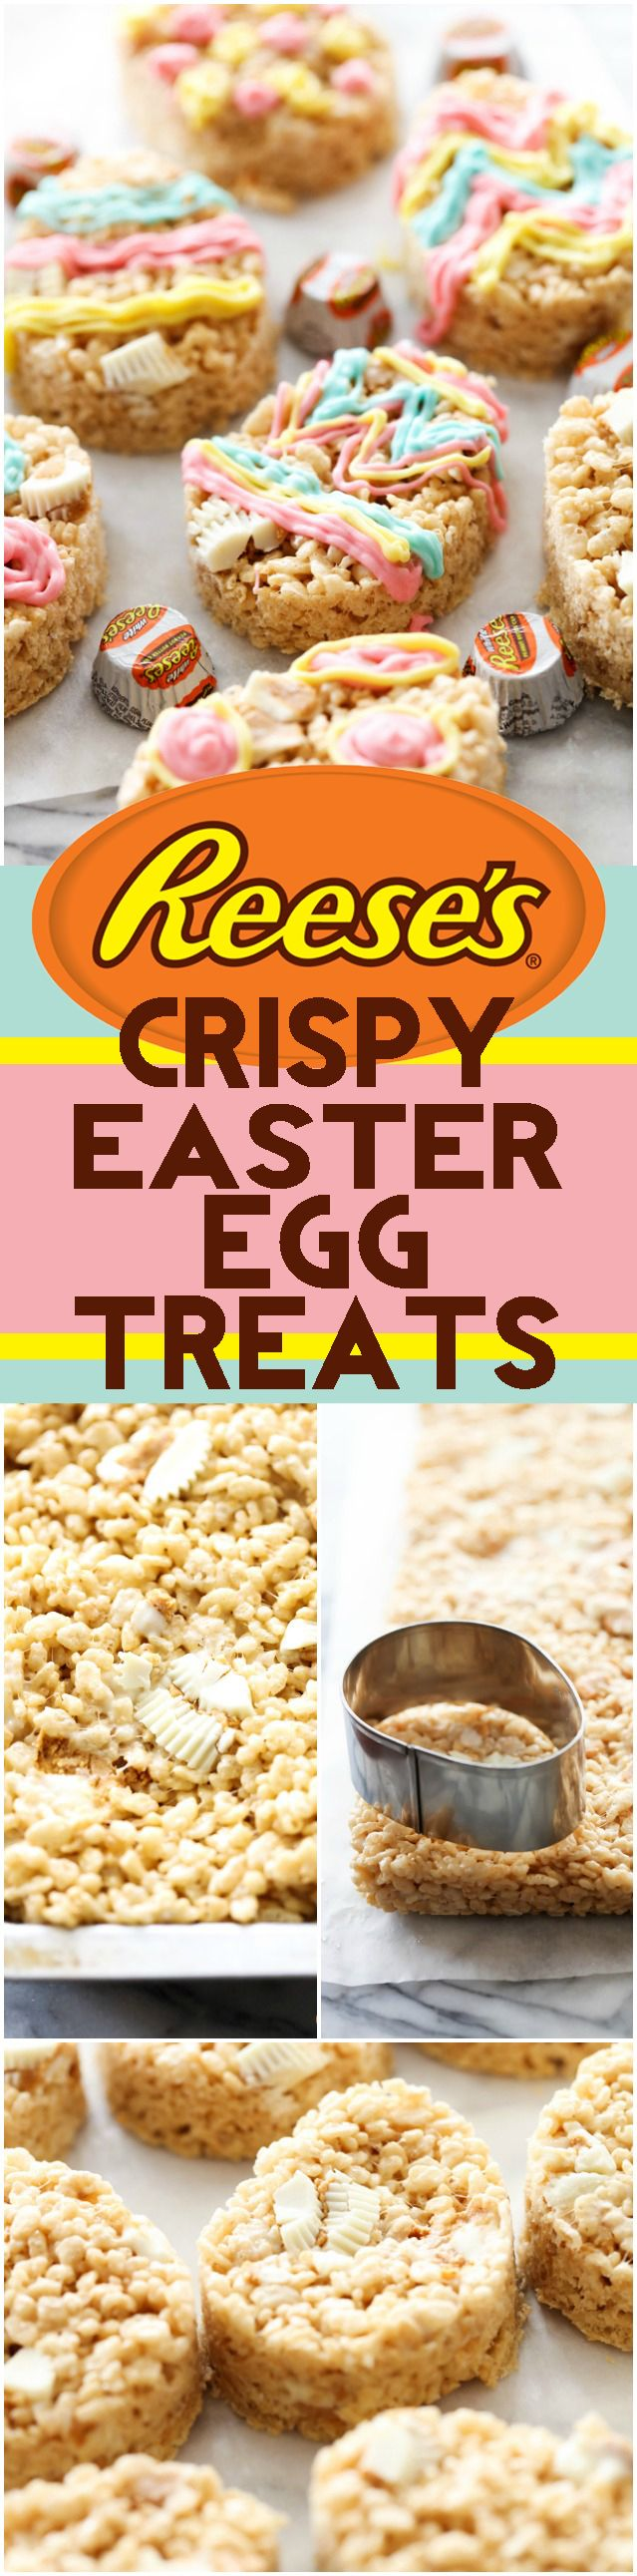 A delicious and easy treat that is fun for the whole family! Decorate the eggs however you want for a bright, colorful and perfect Easter treat!